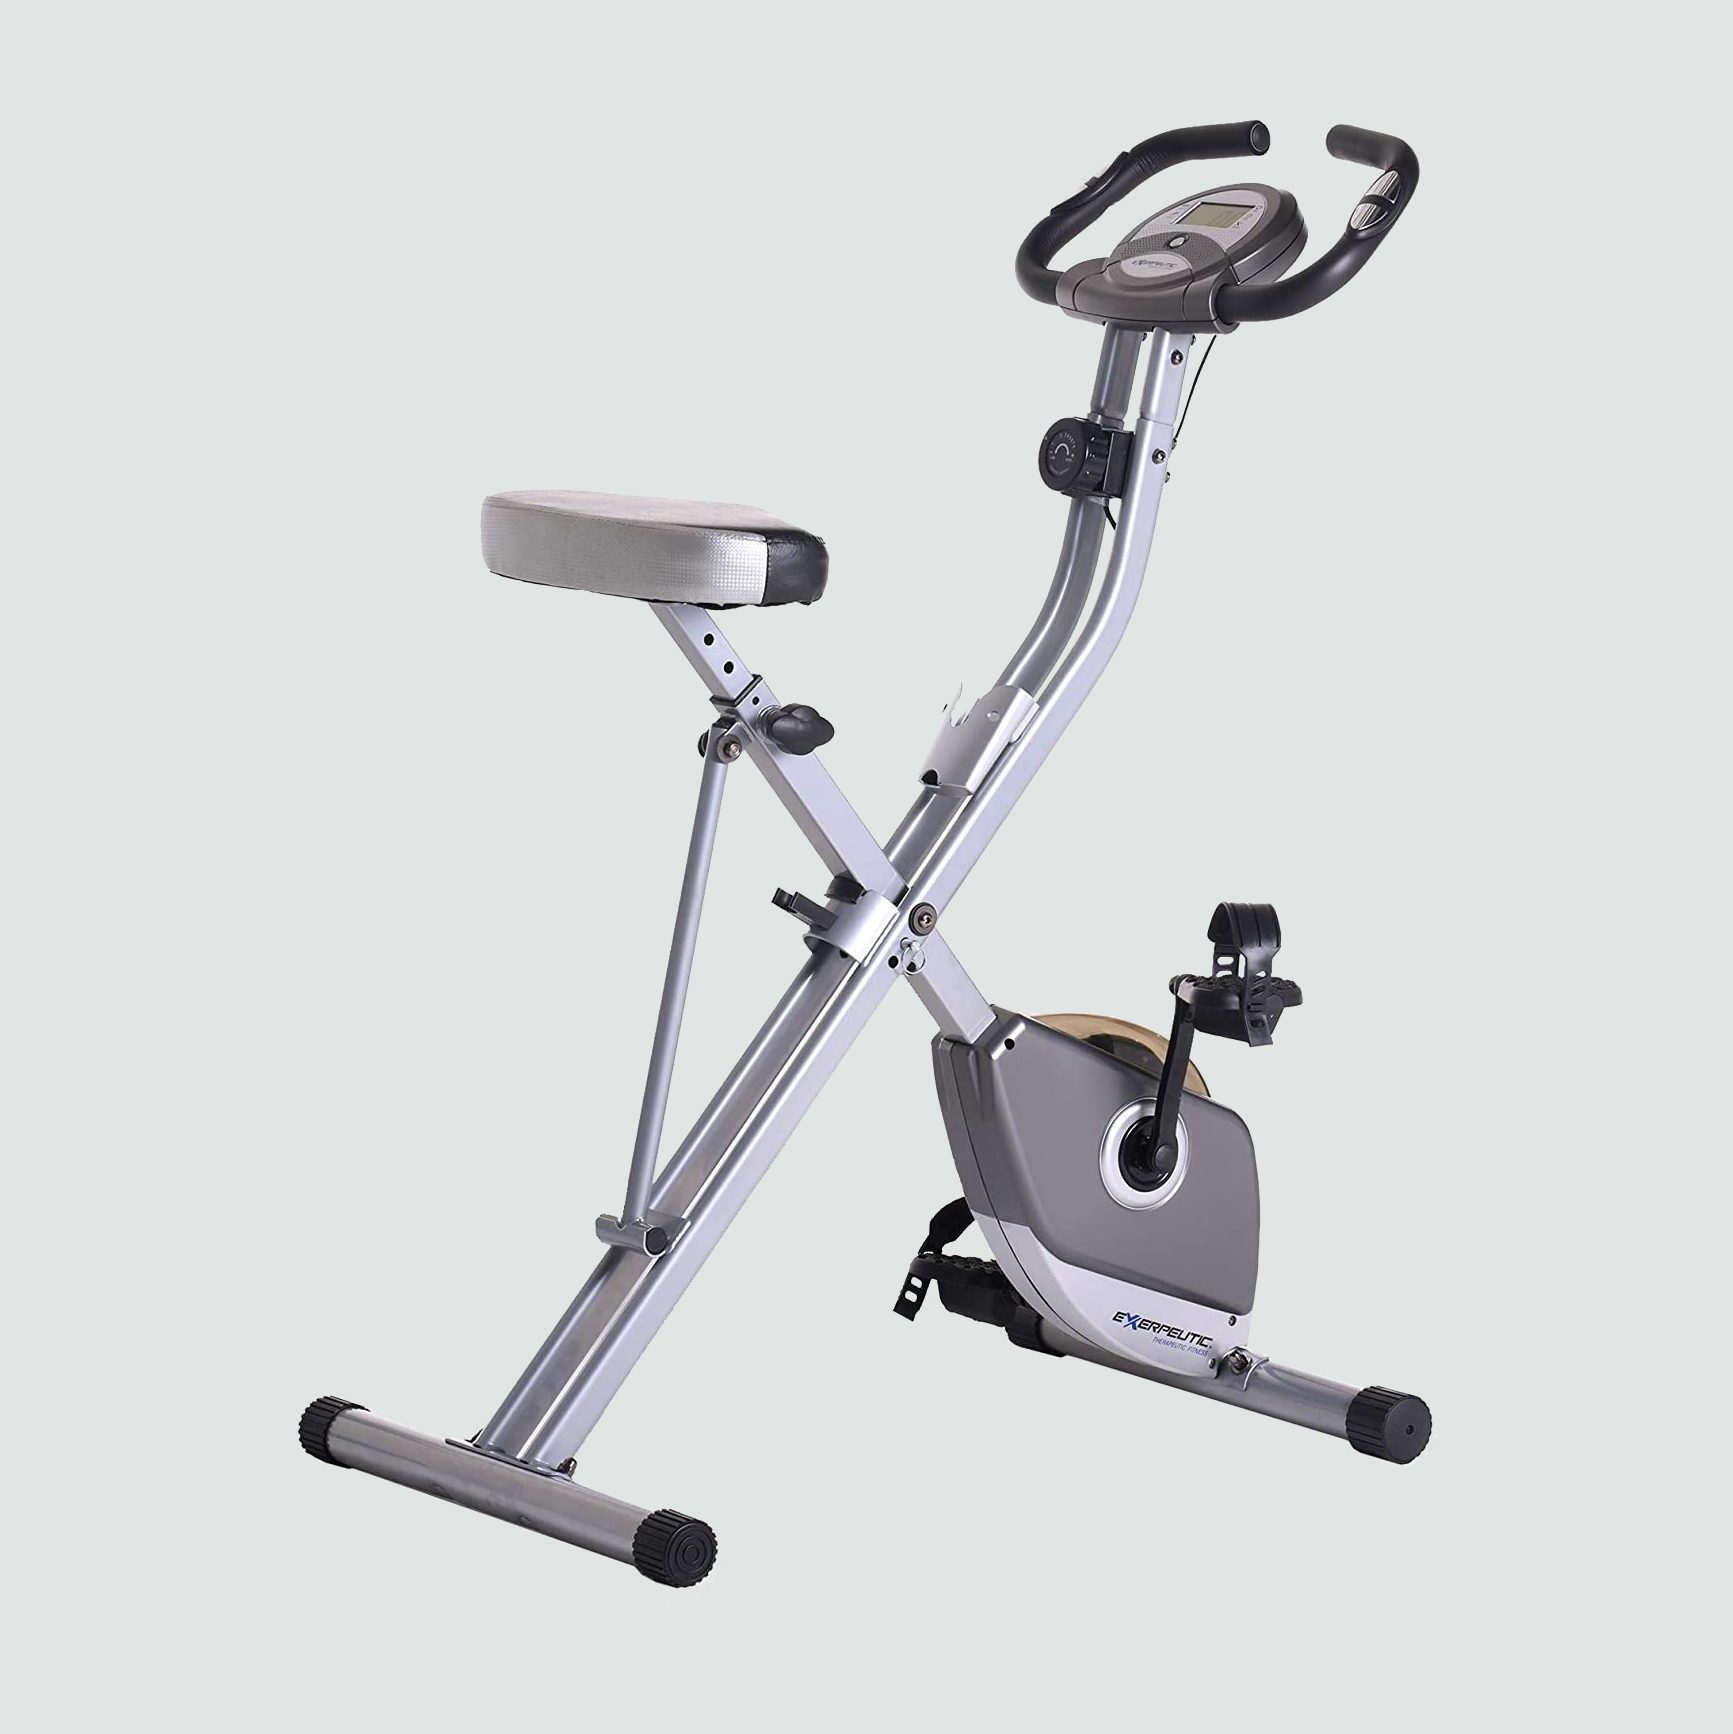 An exercise bike for fitness